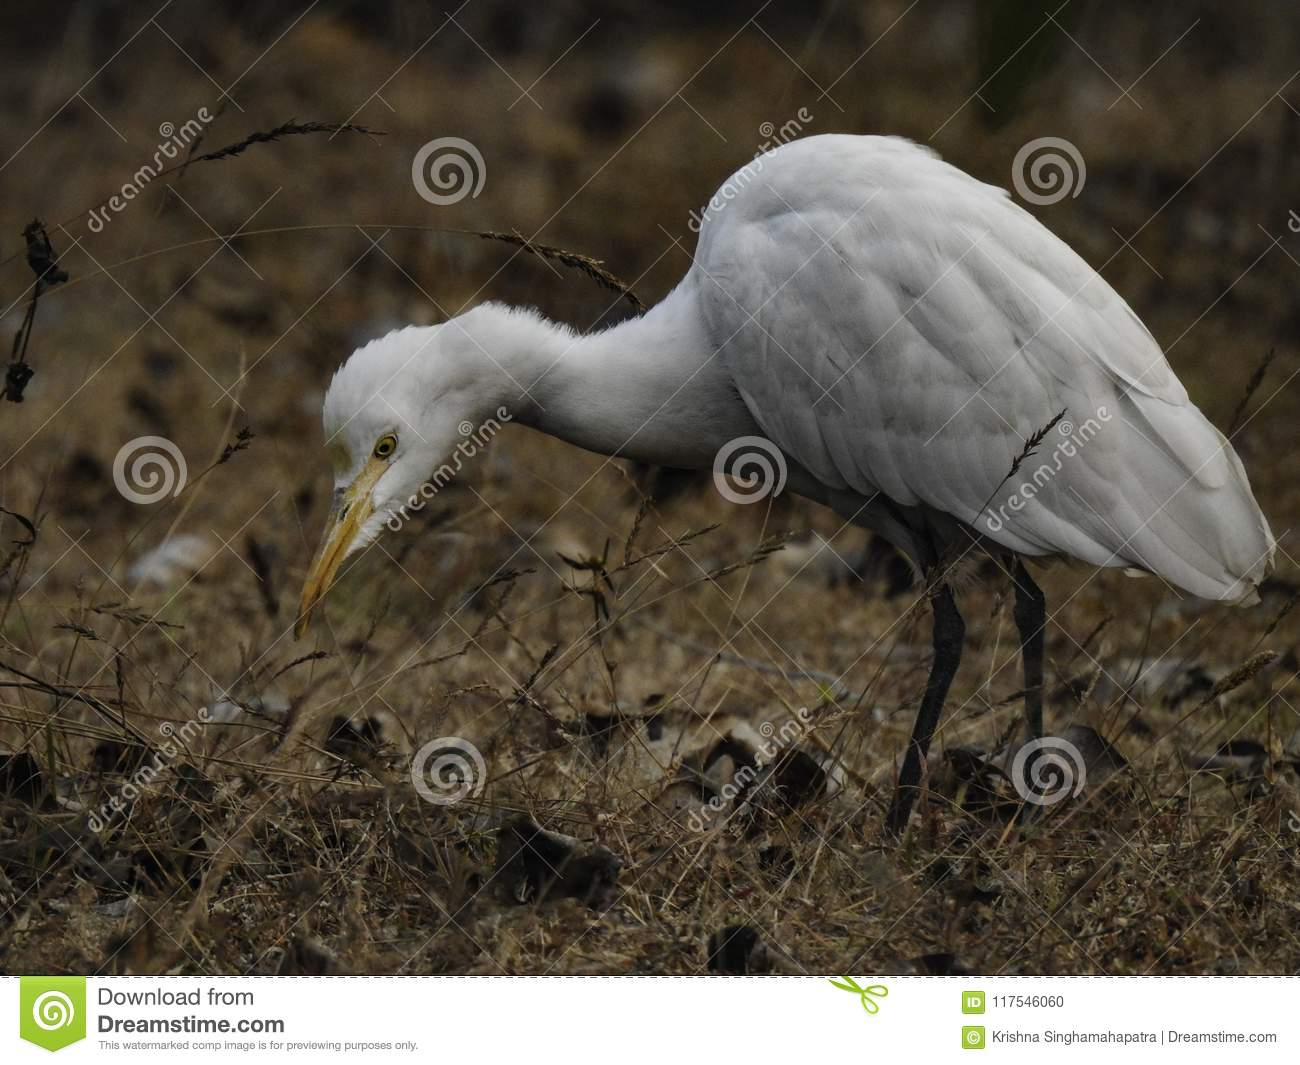 White Crane Bird Searching For Food Stock Photo - Image of